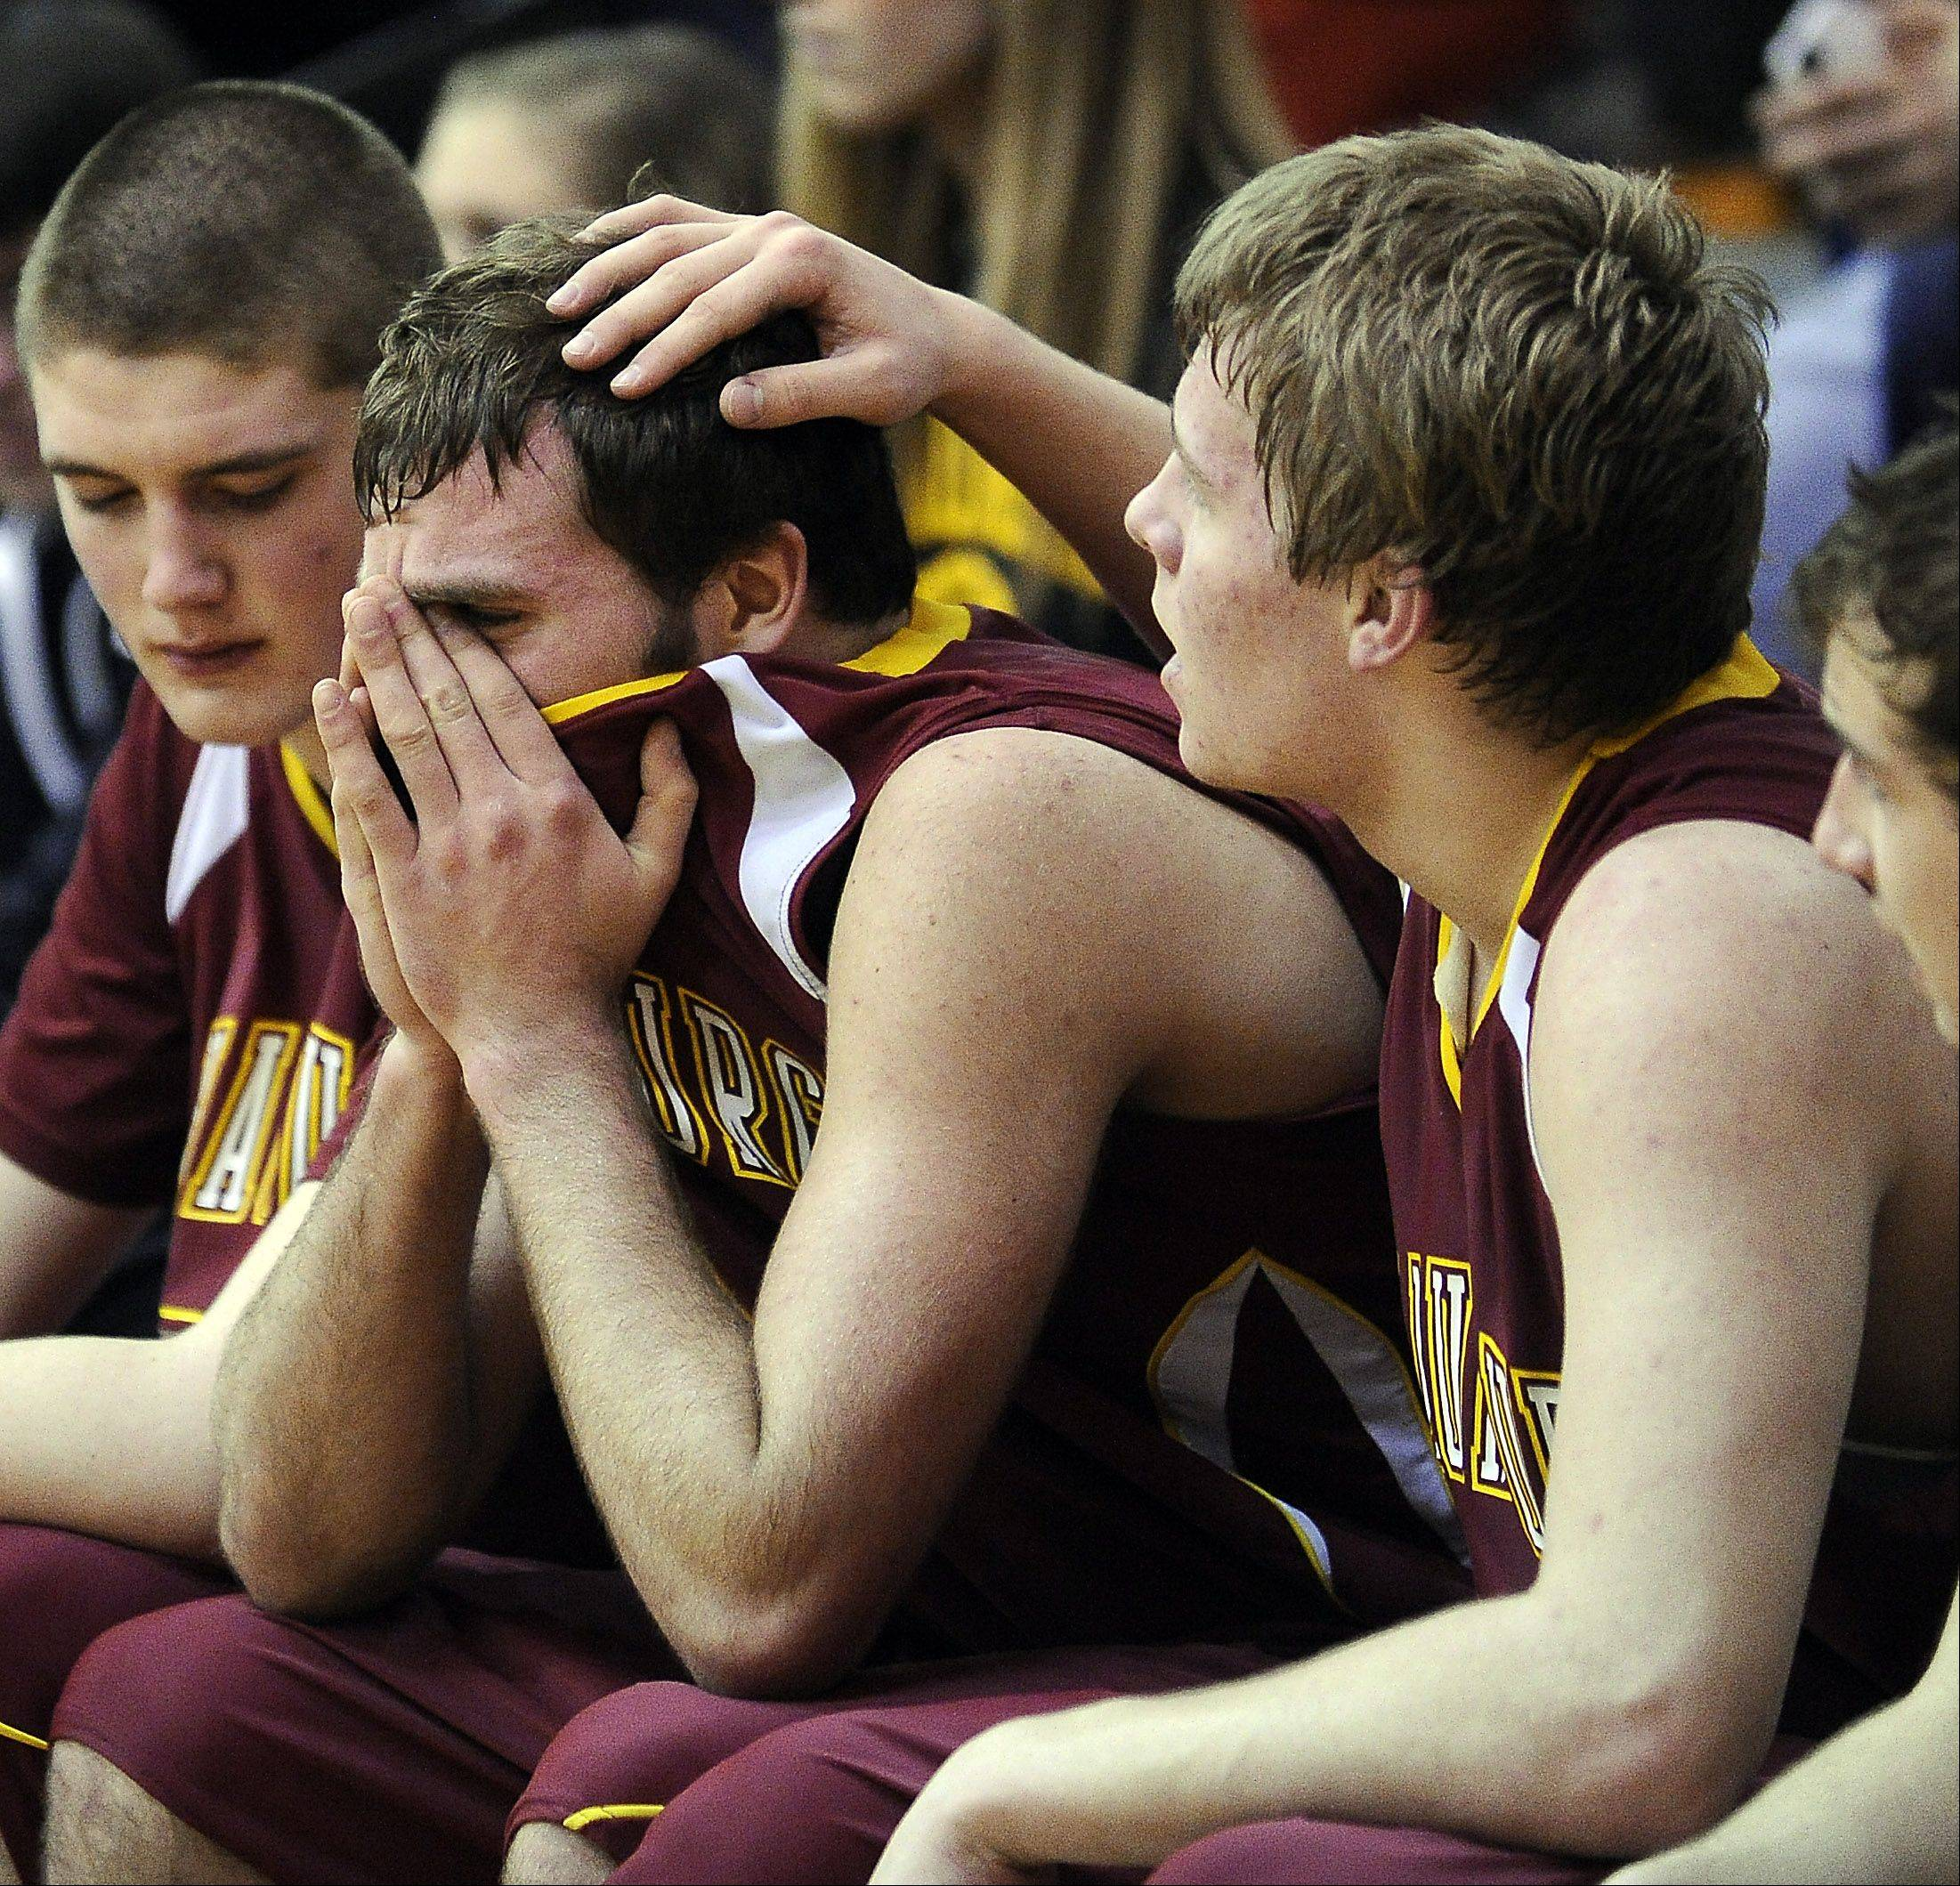 Schaumburg's Kyle Bolger comforts Christian Spandiary as their season comes to a conclusion in the sectional final at Schaumburg High School on Friday.